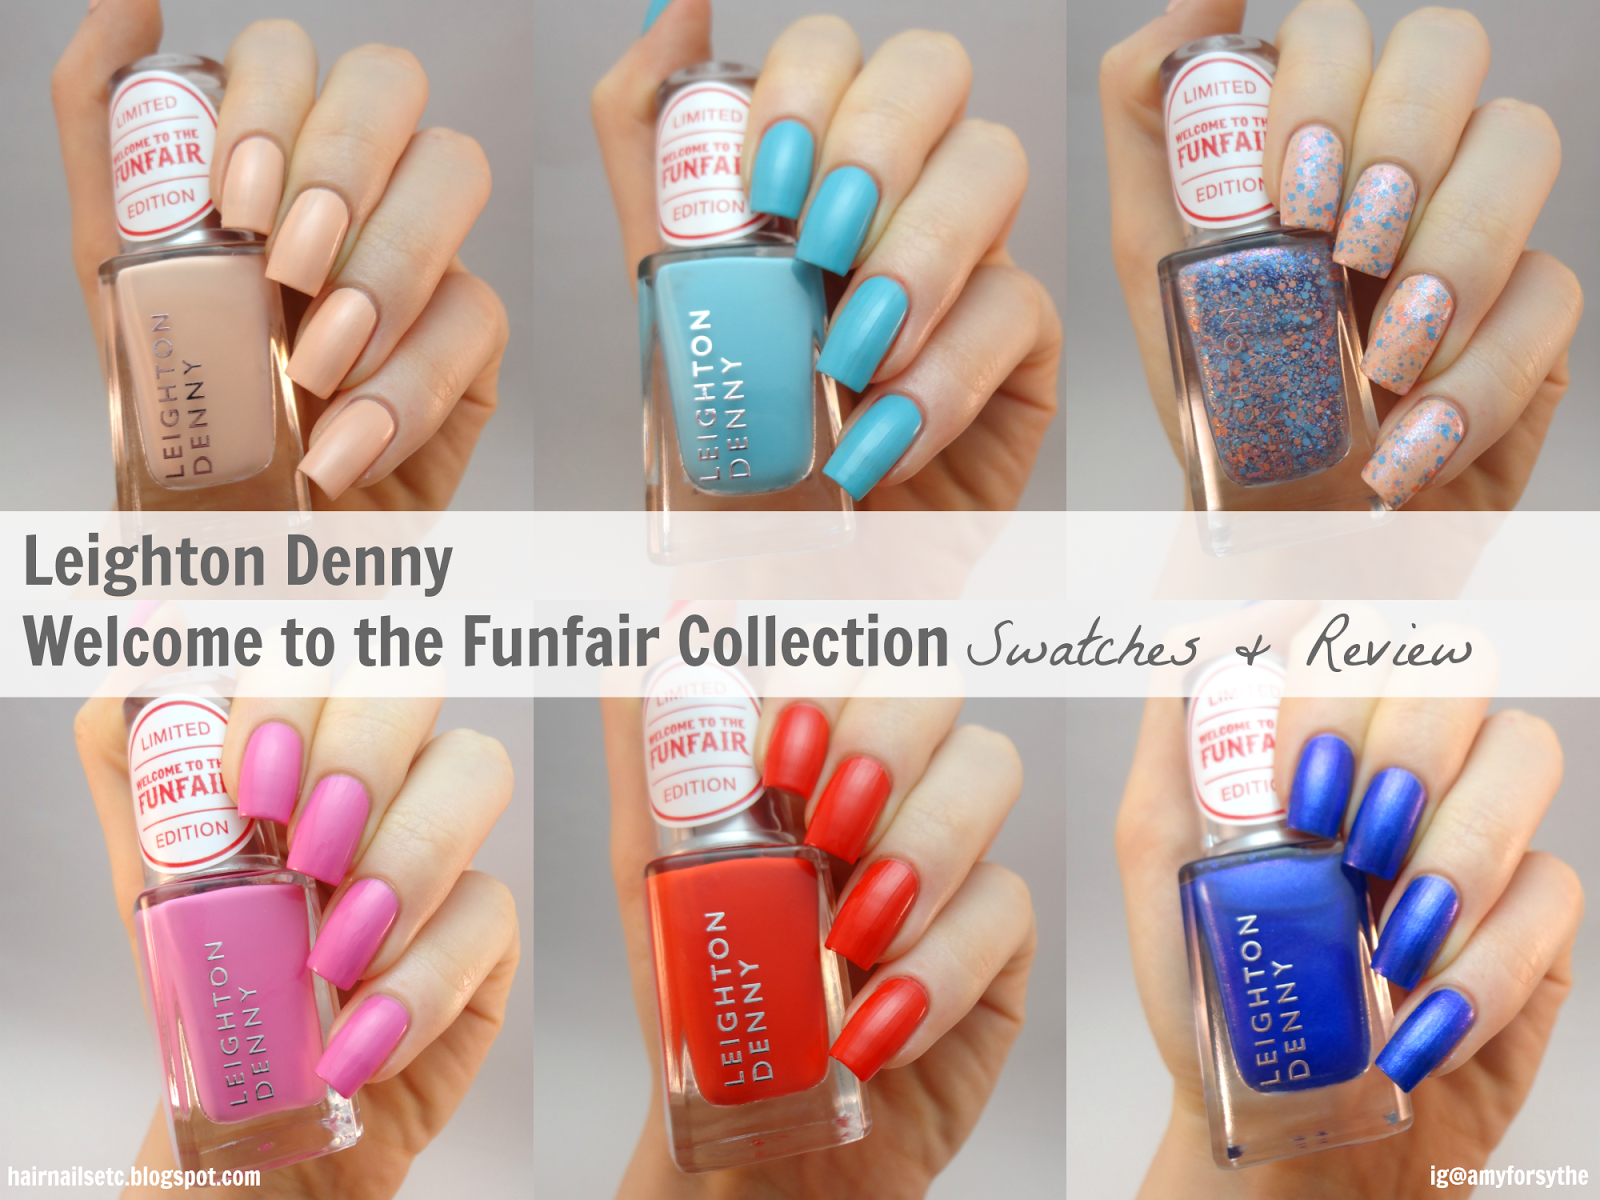 Leighton Denny Spring Summer 2015 'Ticket to Thrill' Nail Polish Swatches - www.hairnailsetc.blogspot.co.uk / instagram.com/amyforsythe